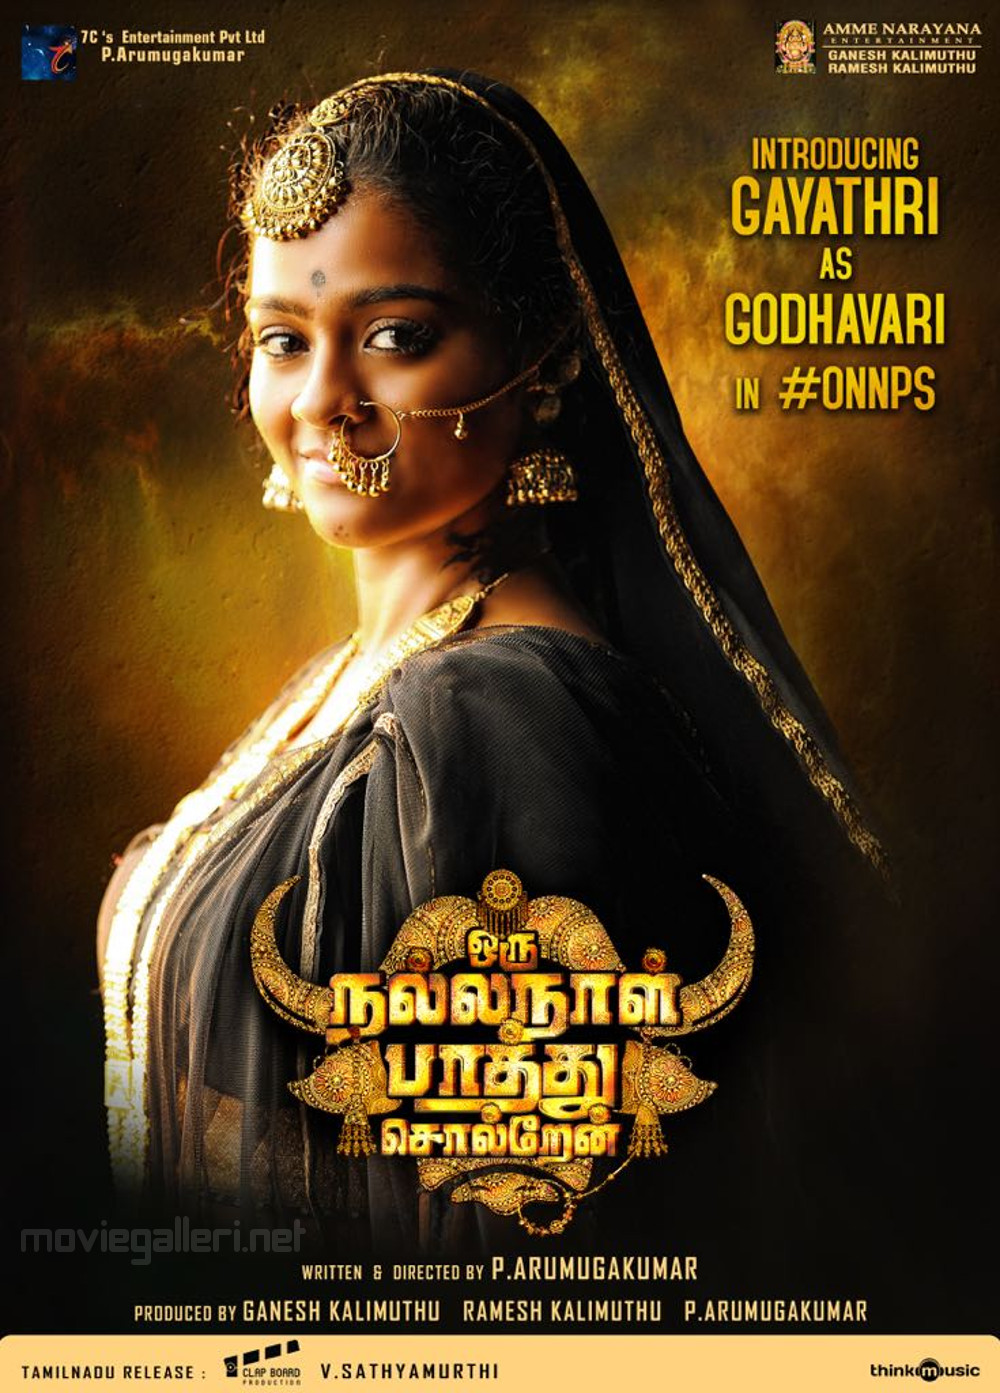 Actress Gayathri as Godhavari in Oru Nalla Naal Paathu Solren Movie Poster